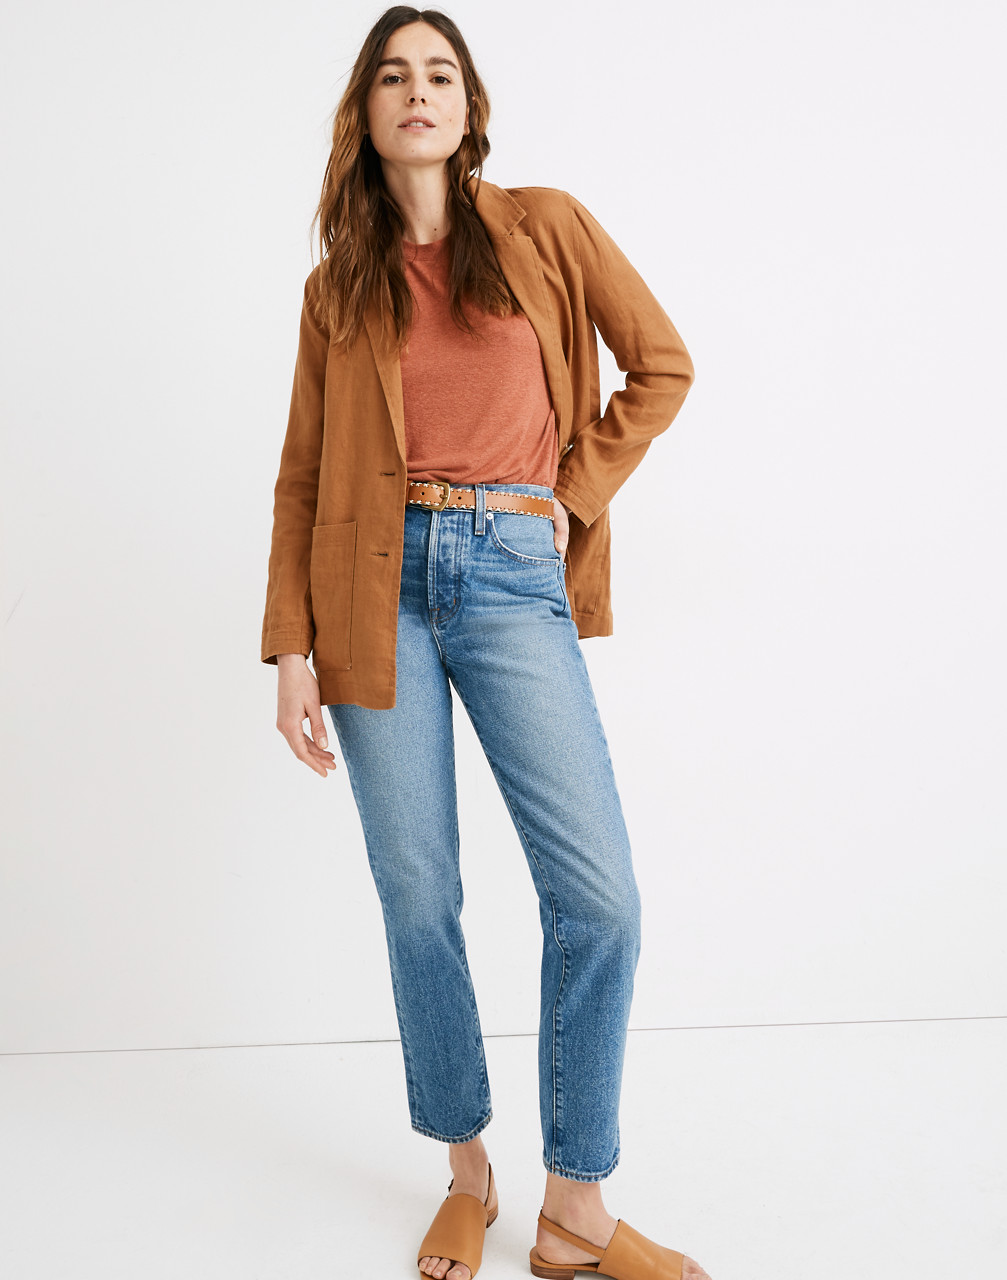 90s Clothing Outfits You Can Buy Now The Perfect Vintage Jean in Cormie Wash $79.99 AT vintagedancer.com